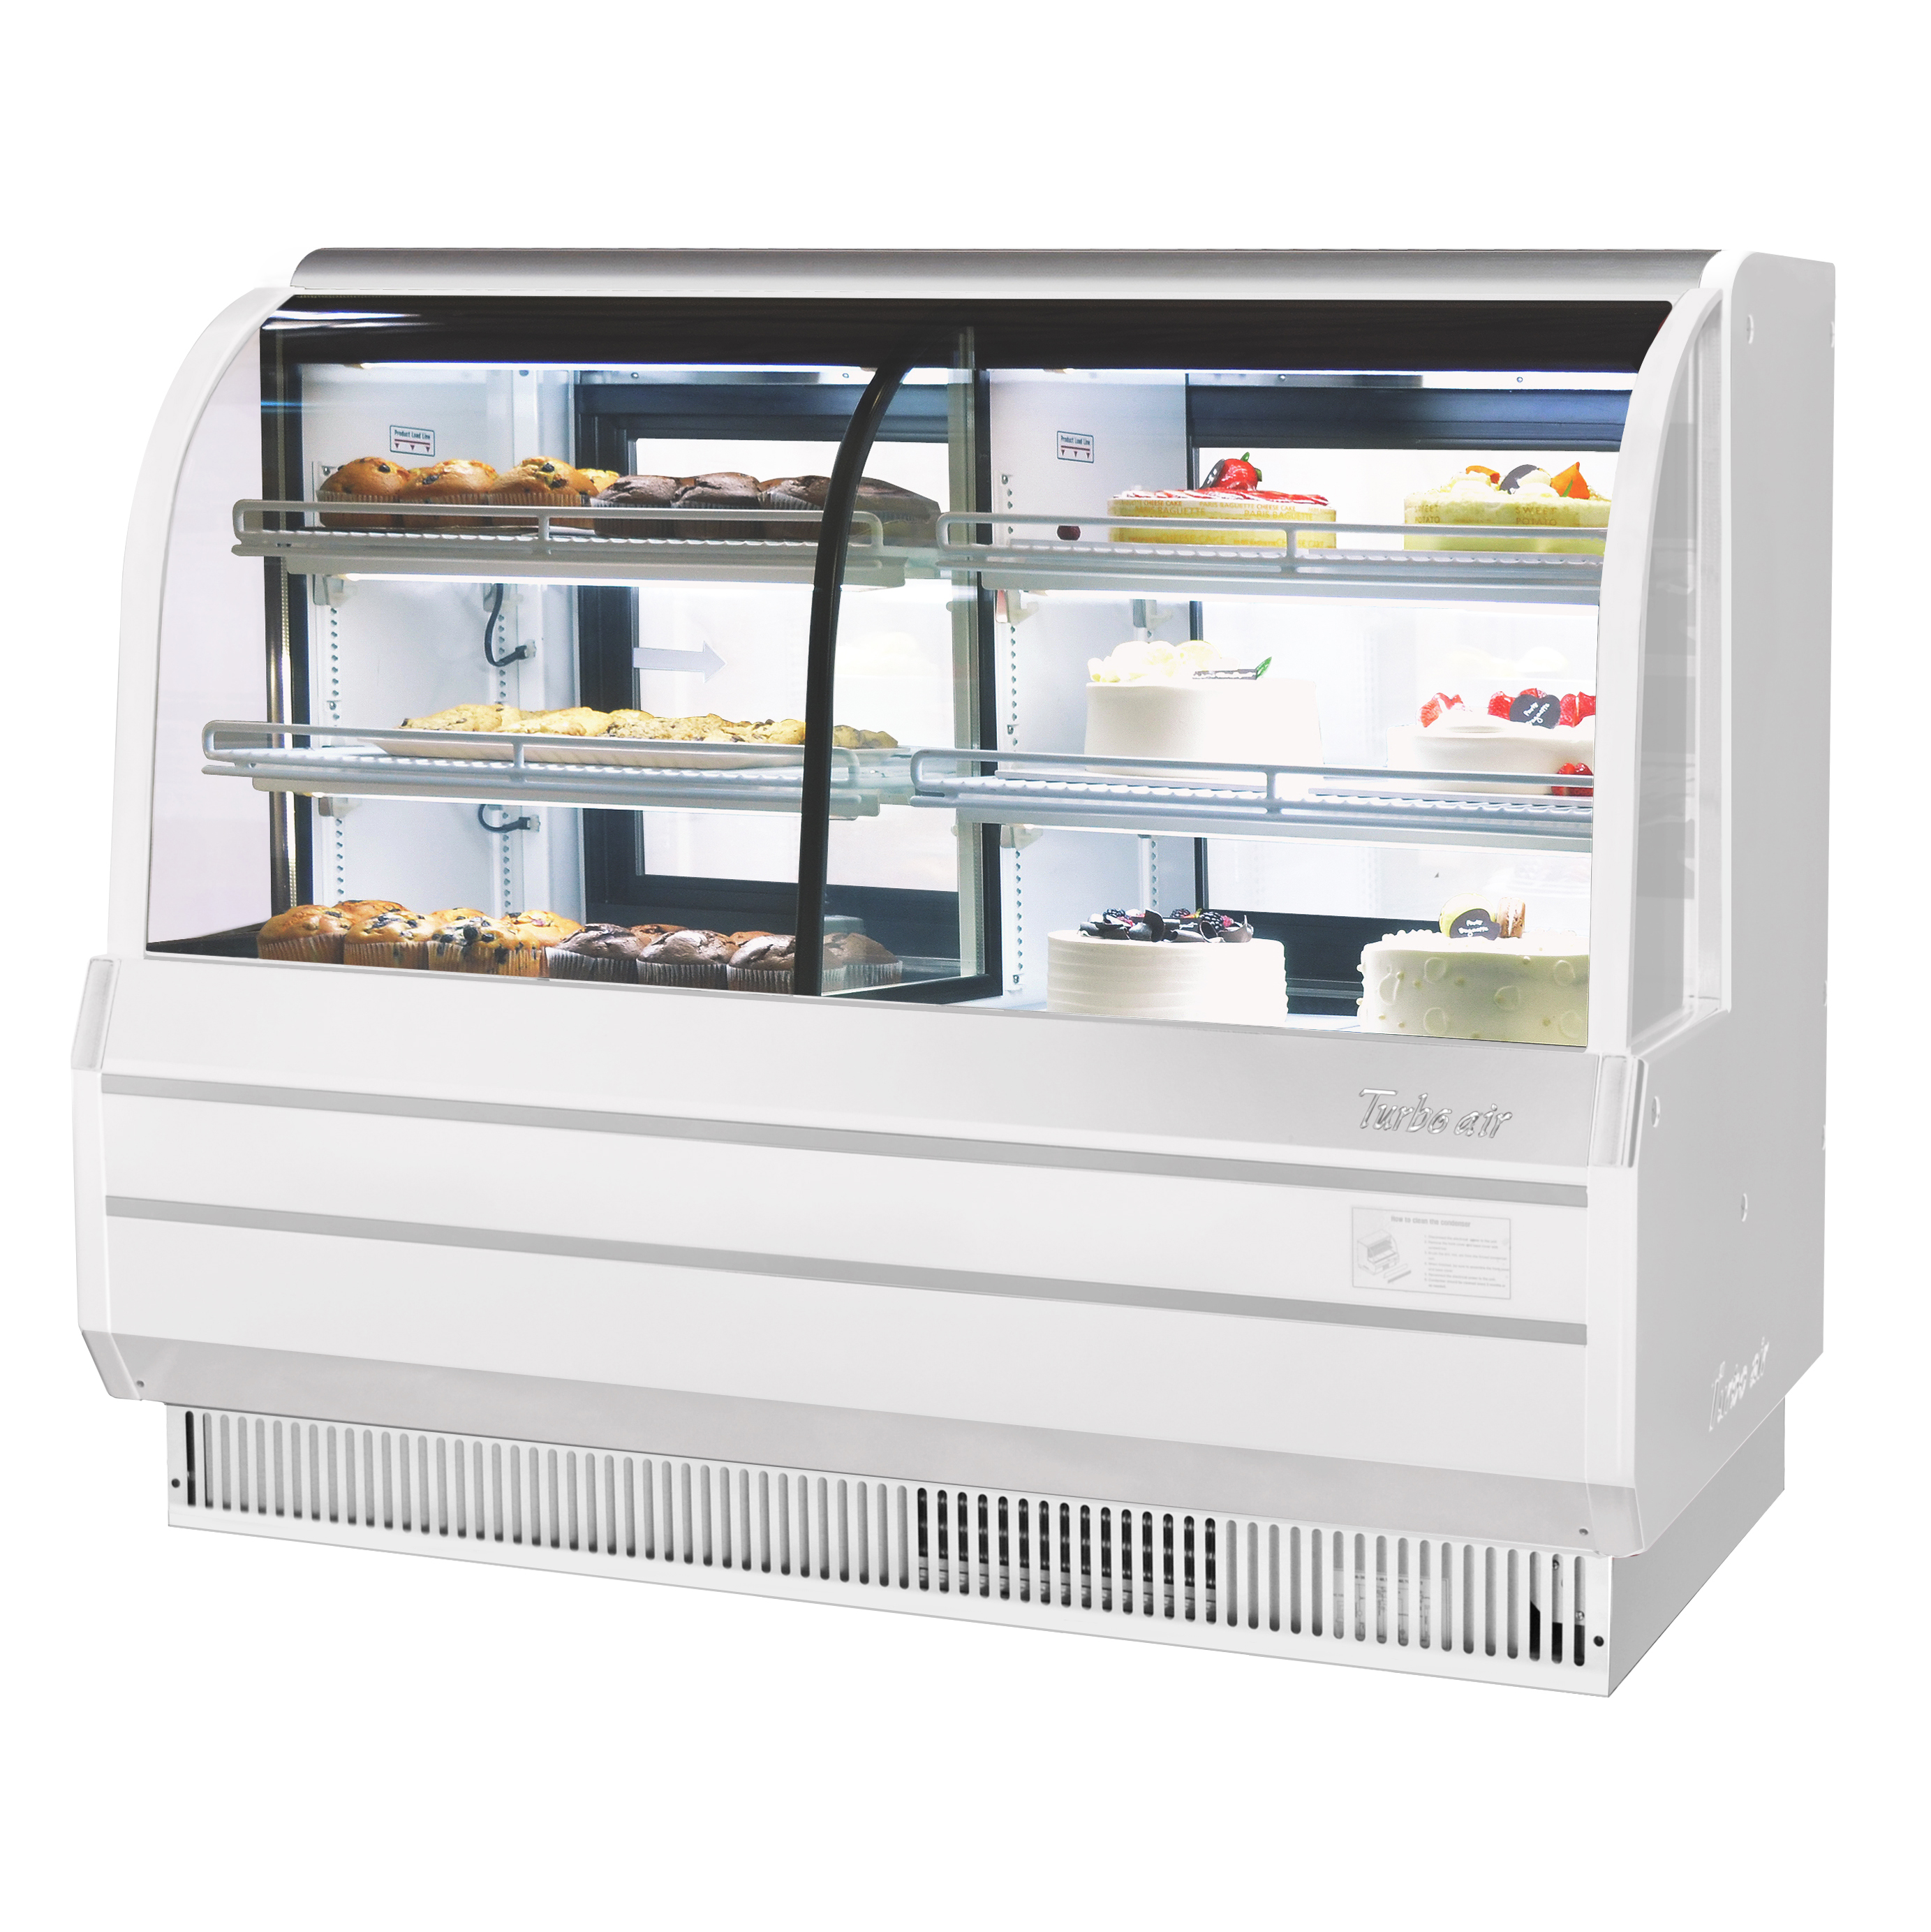 Turbo Air TCGB-60CO-W(B)-N display case, refrigerated bakery